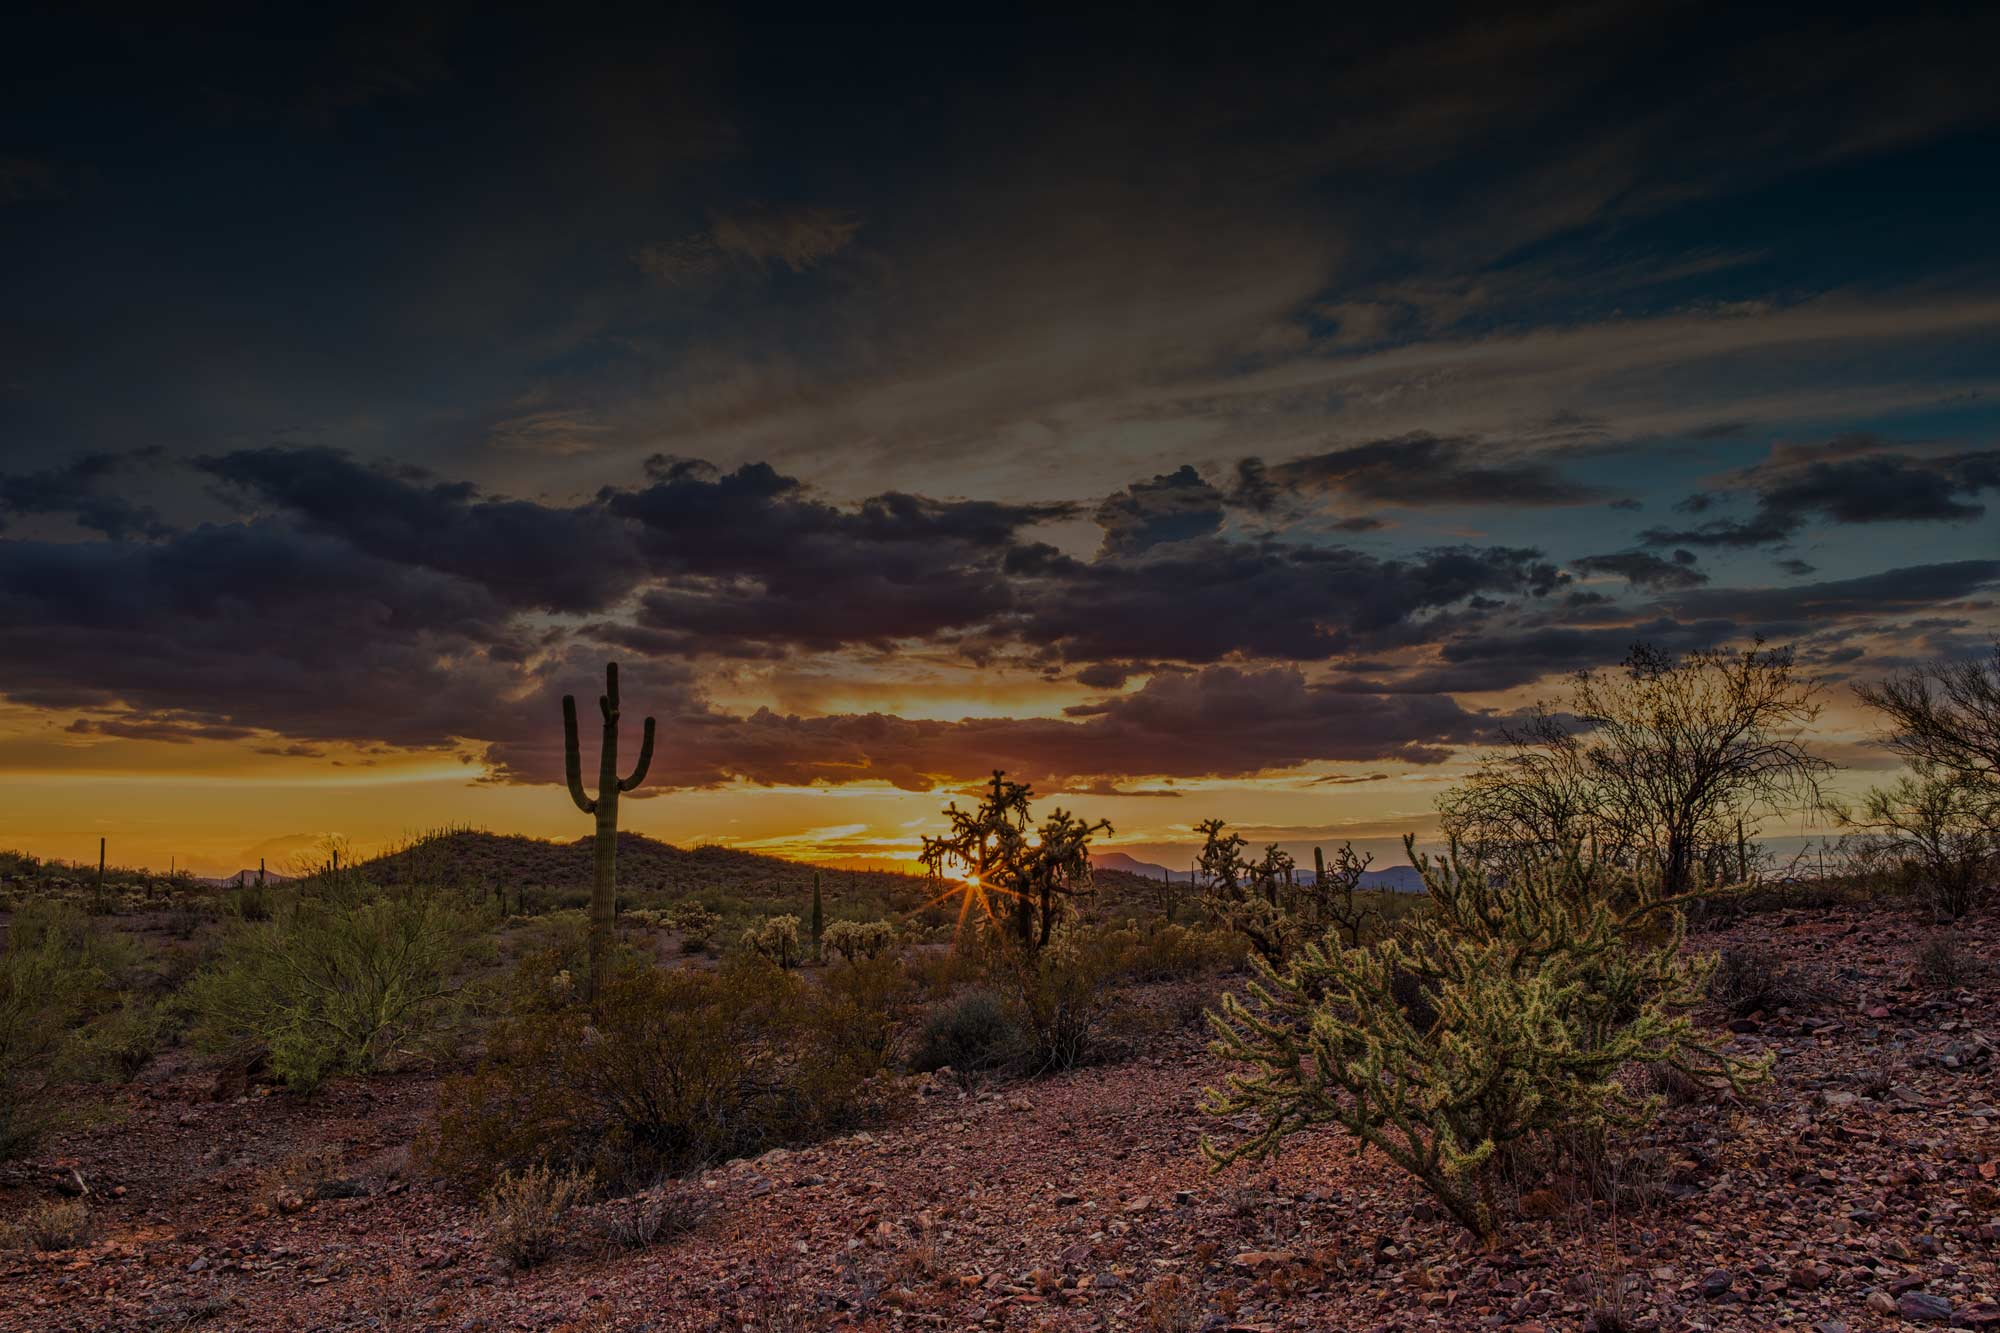 Mesa Drug Rehab Center - arizona desert at sunset